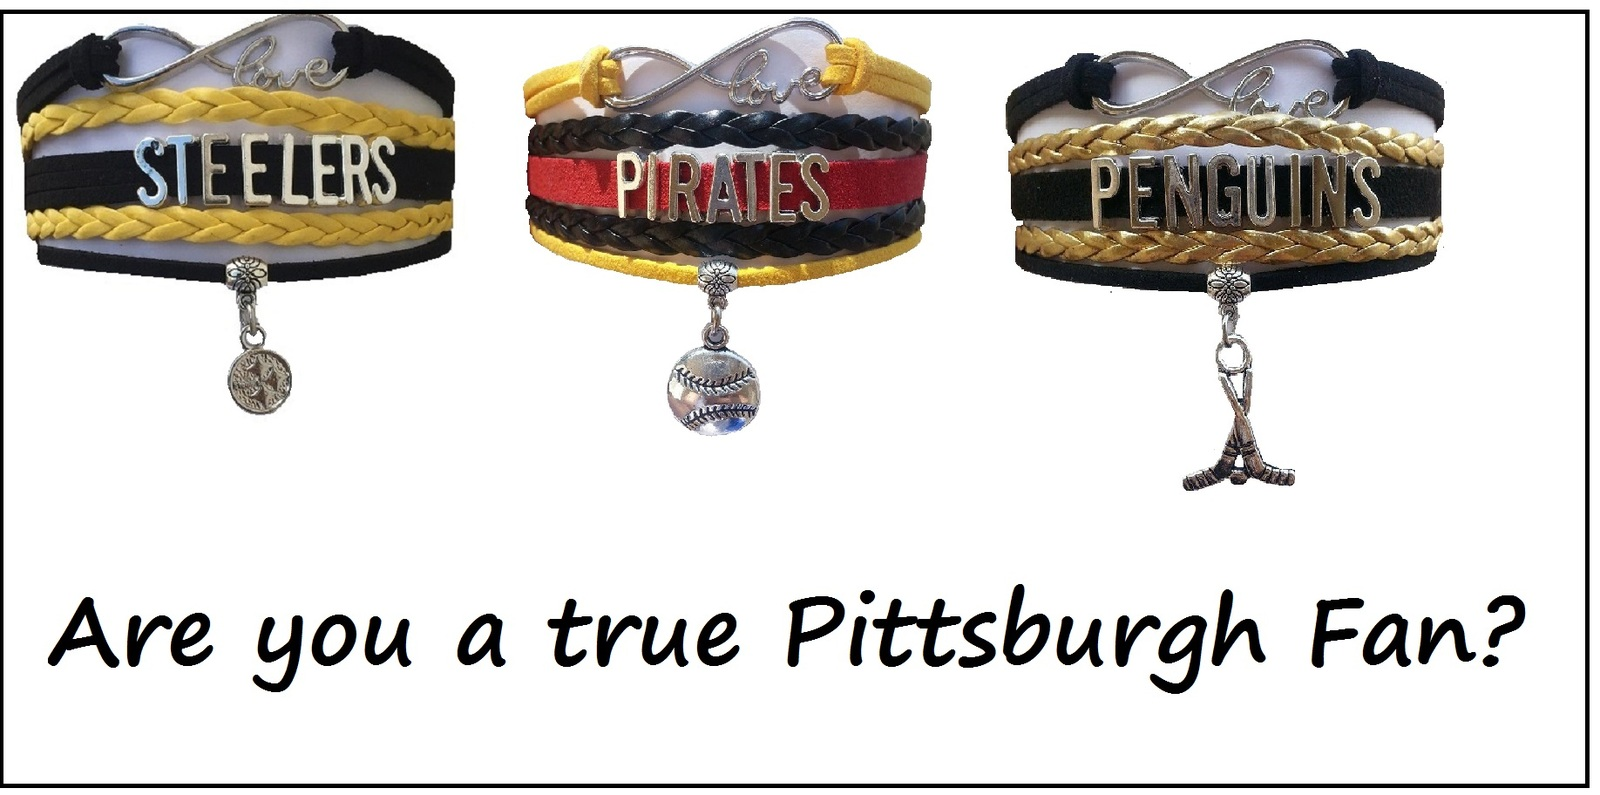 PITTSBURGH Sports Bracelet 3 Pack Gift Special - Steelers, Pirates AND Penguins!